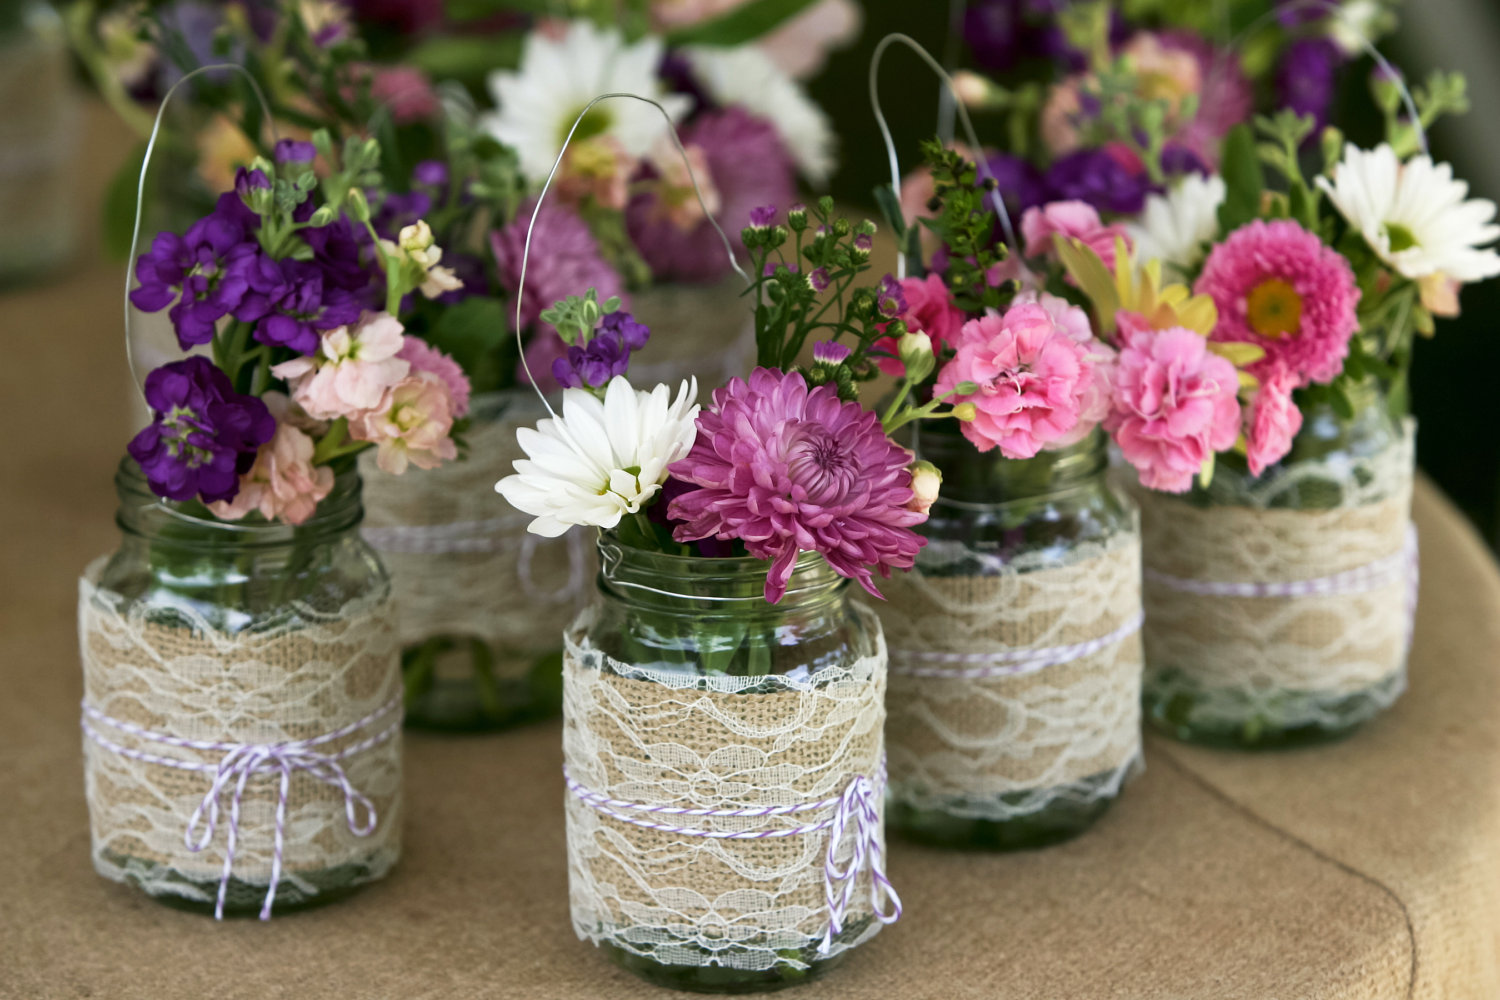 Mason jar decorations for weddings living room interior